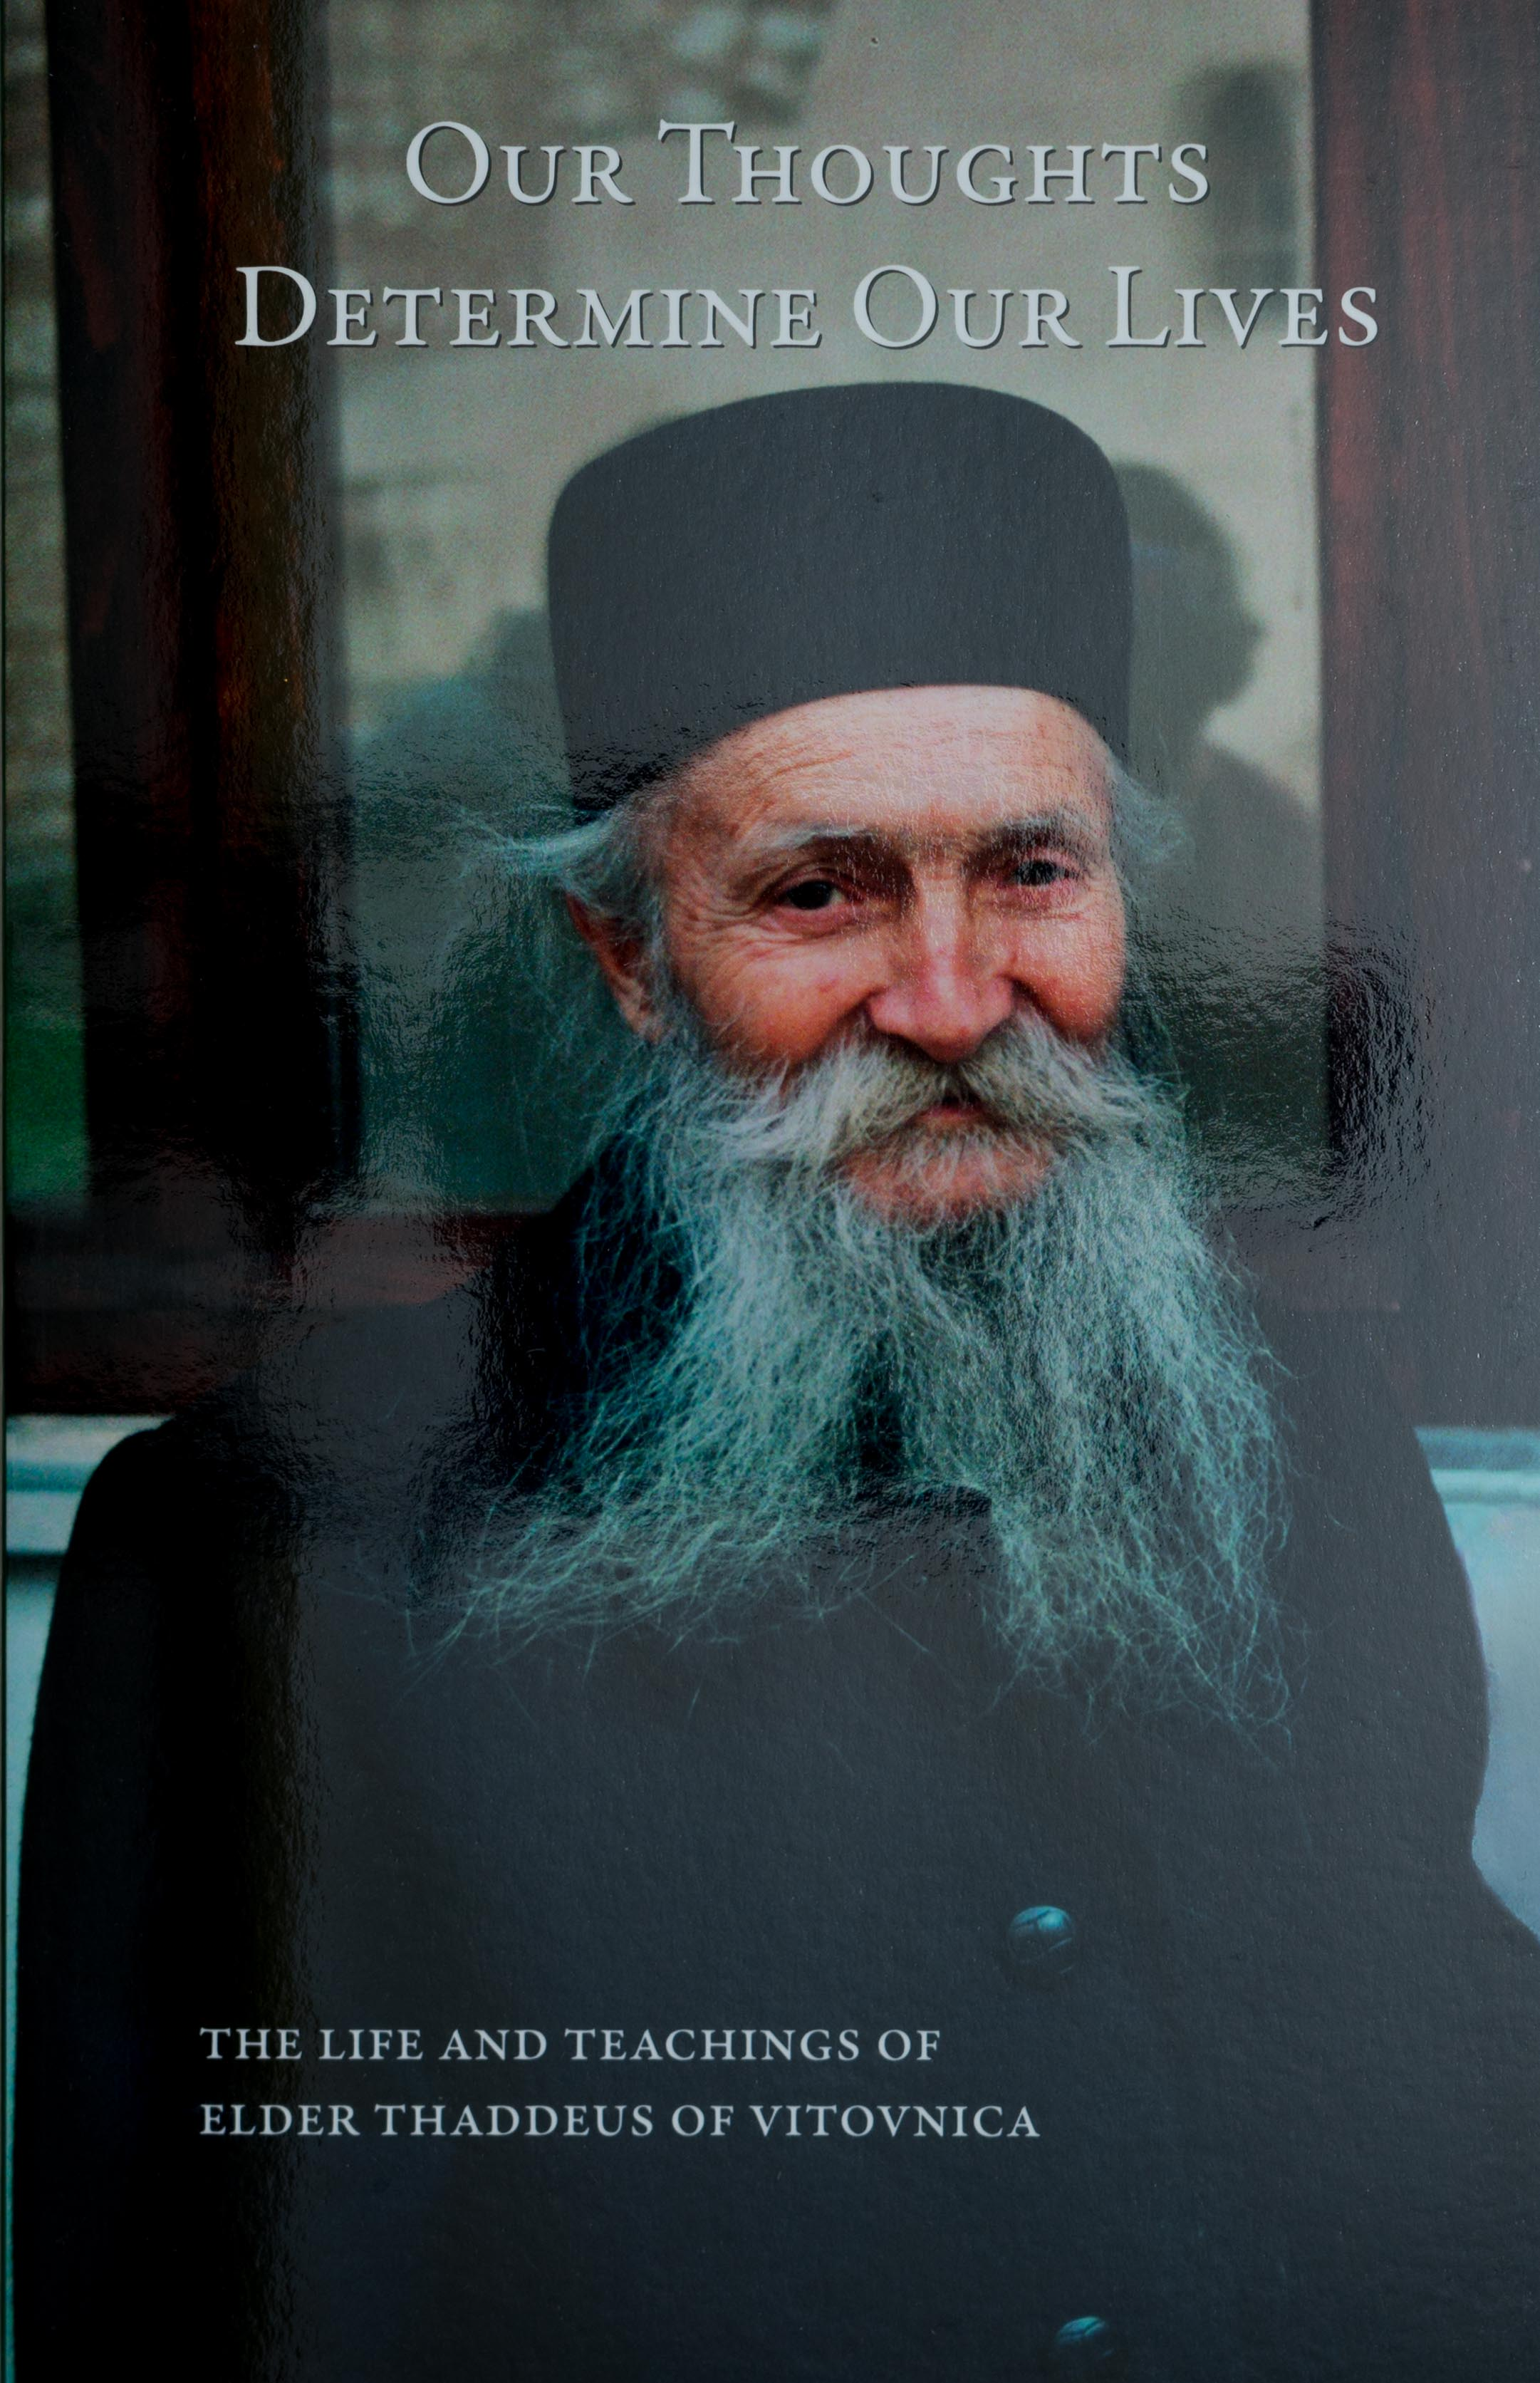 Our Thoughts Determine Our Lives: The Life & Teachings of Elder Thaddeus of Vitovnica